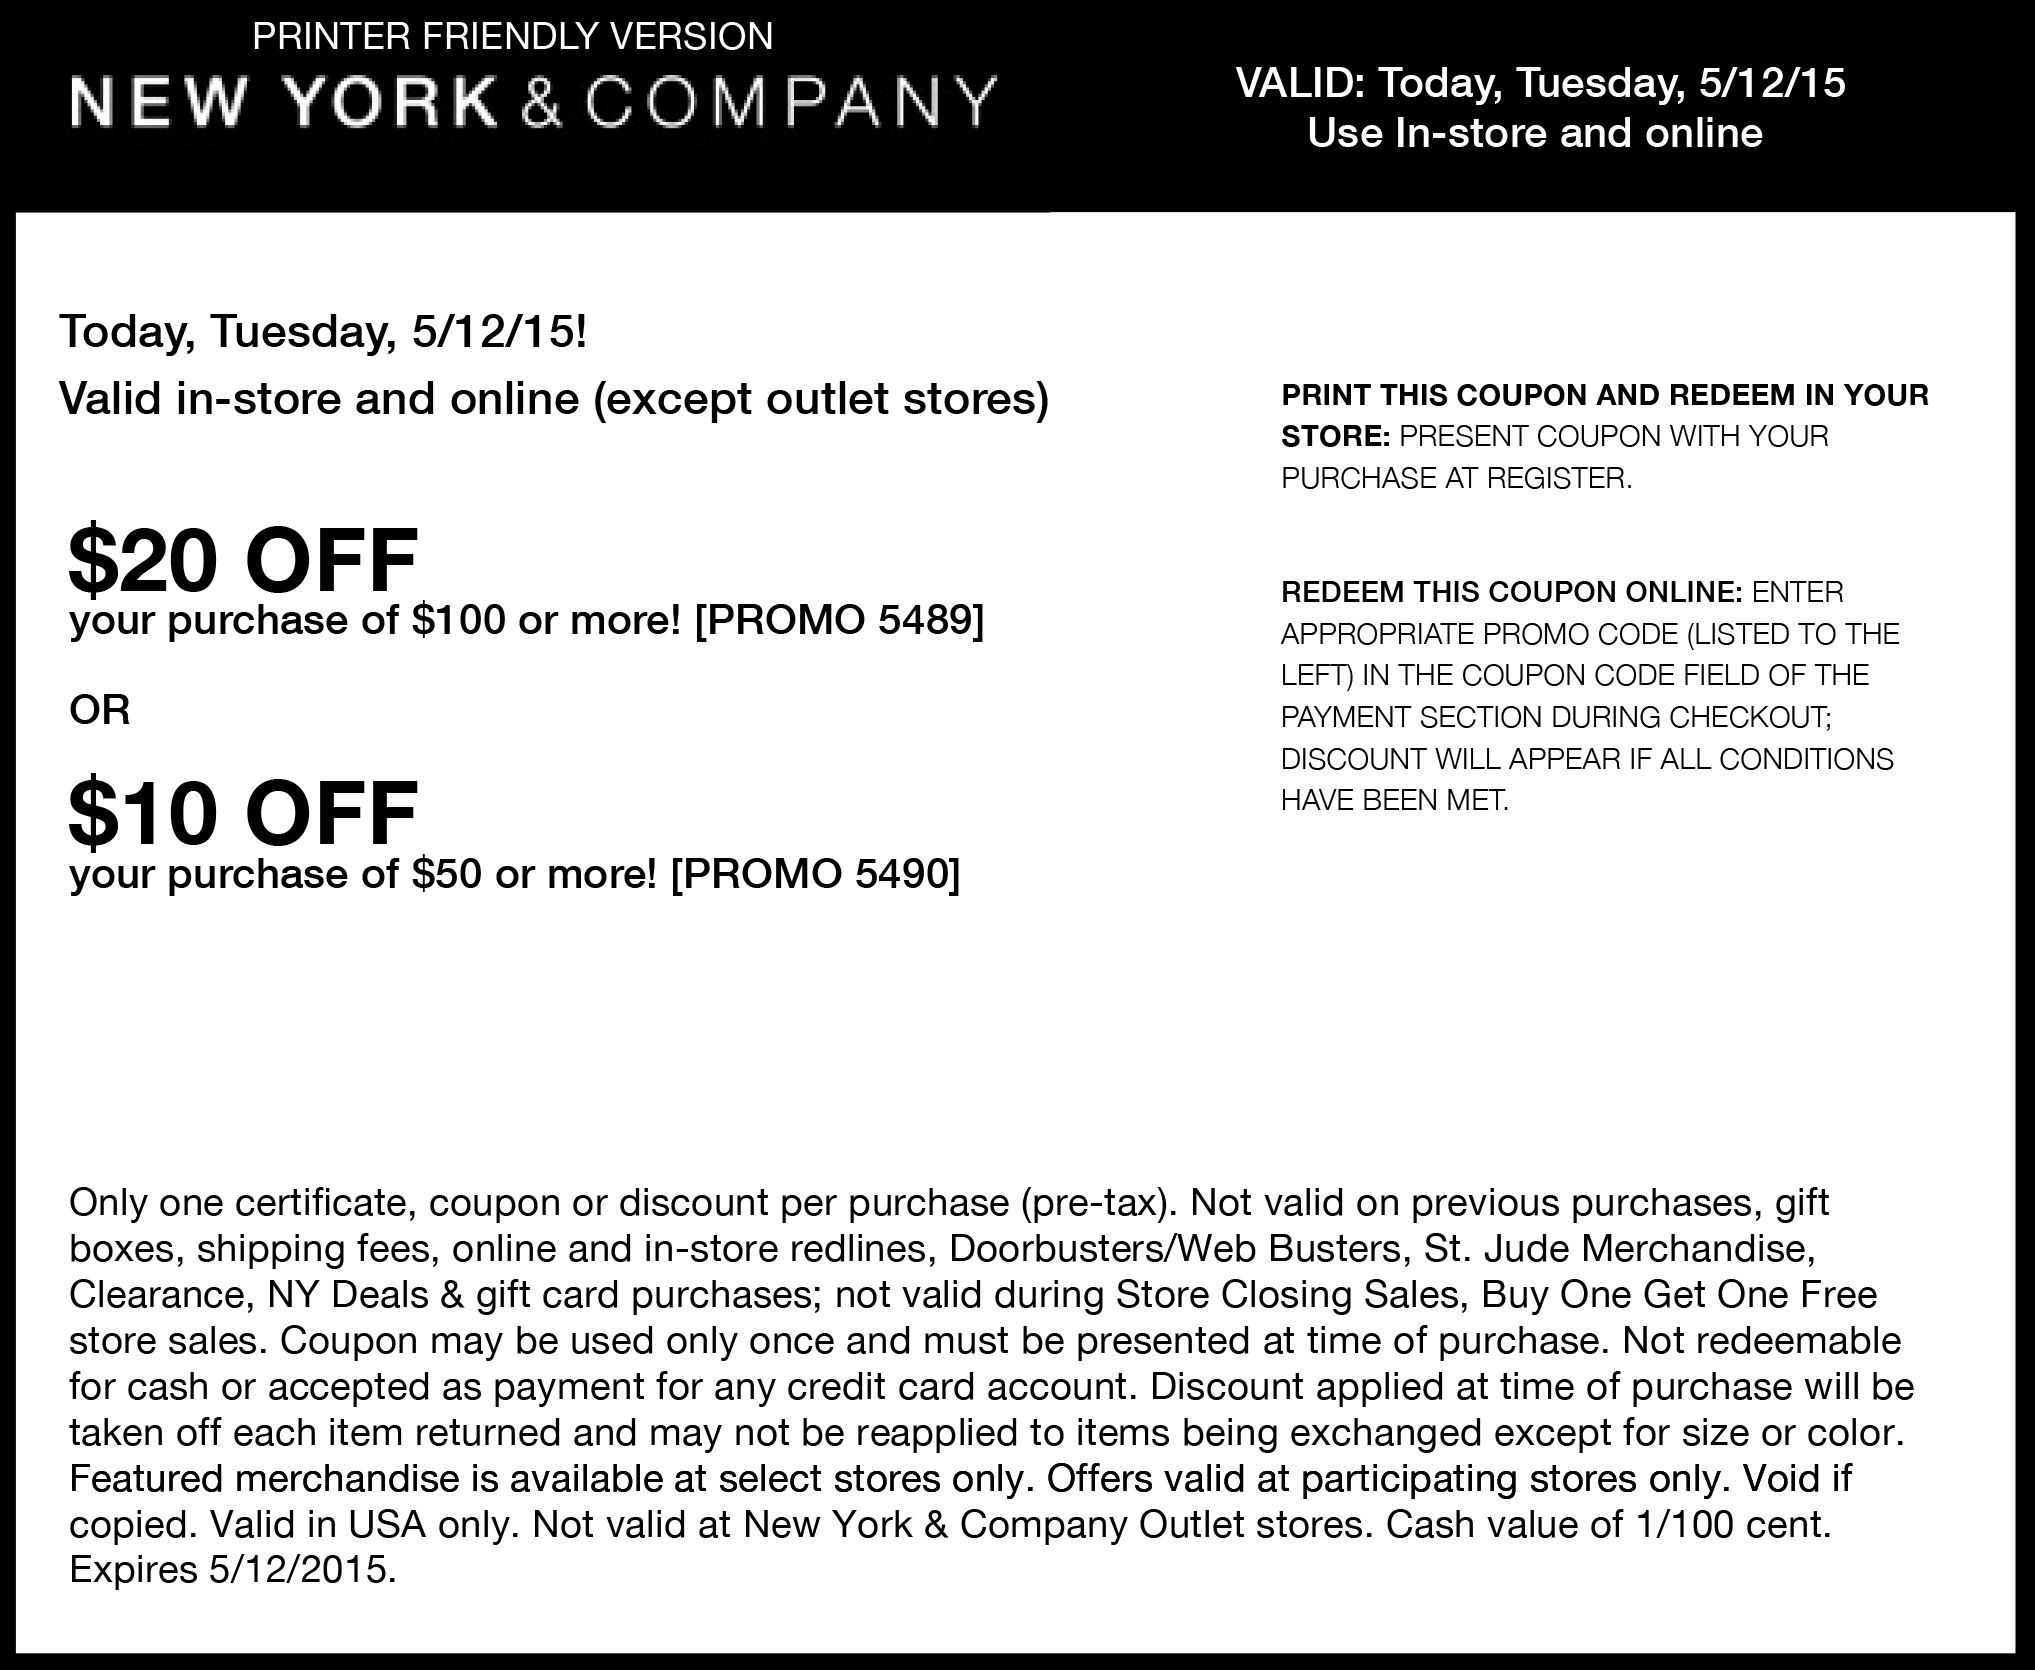 New York & Company Coupon July 2018 $10 off $50 & more today at New York & Company, or online via promo code 5490